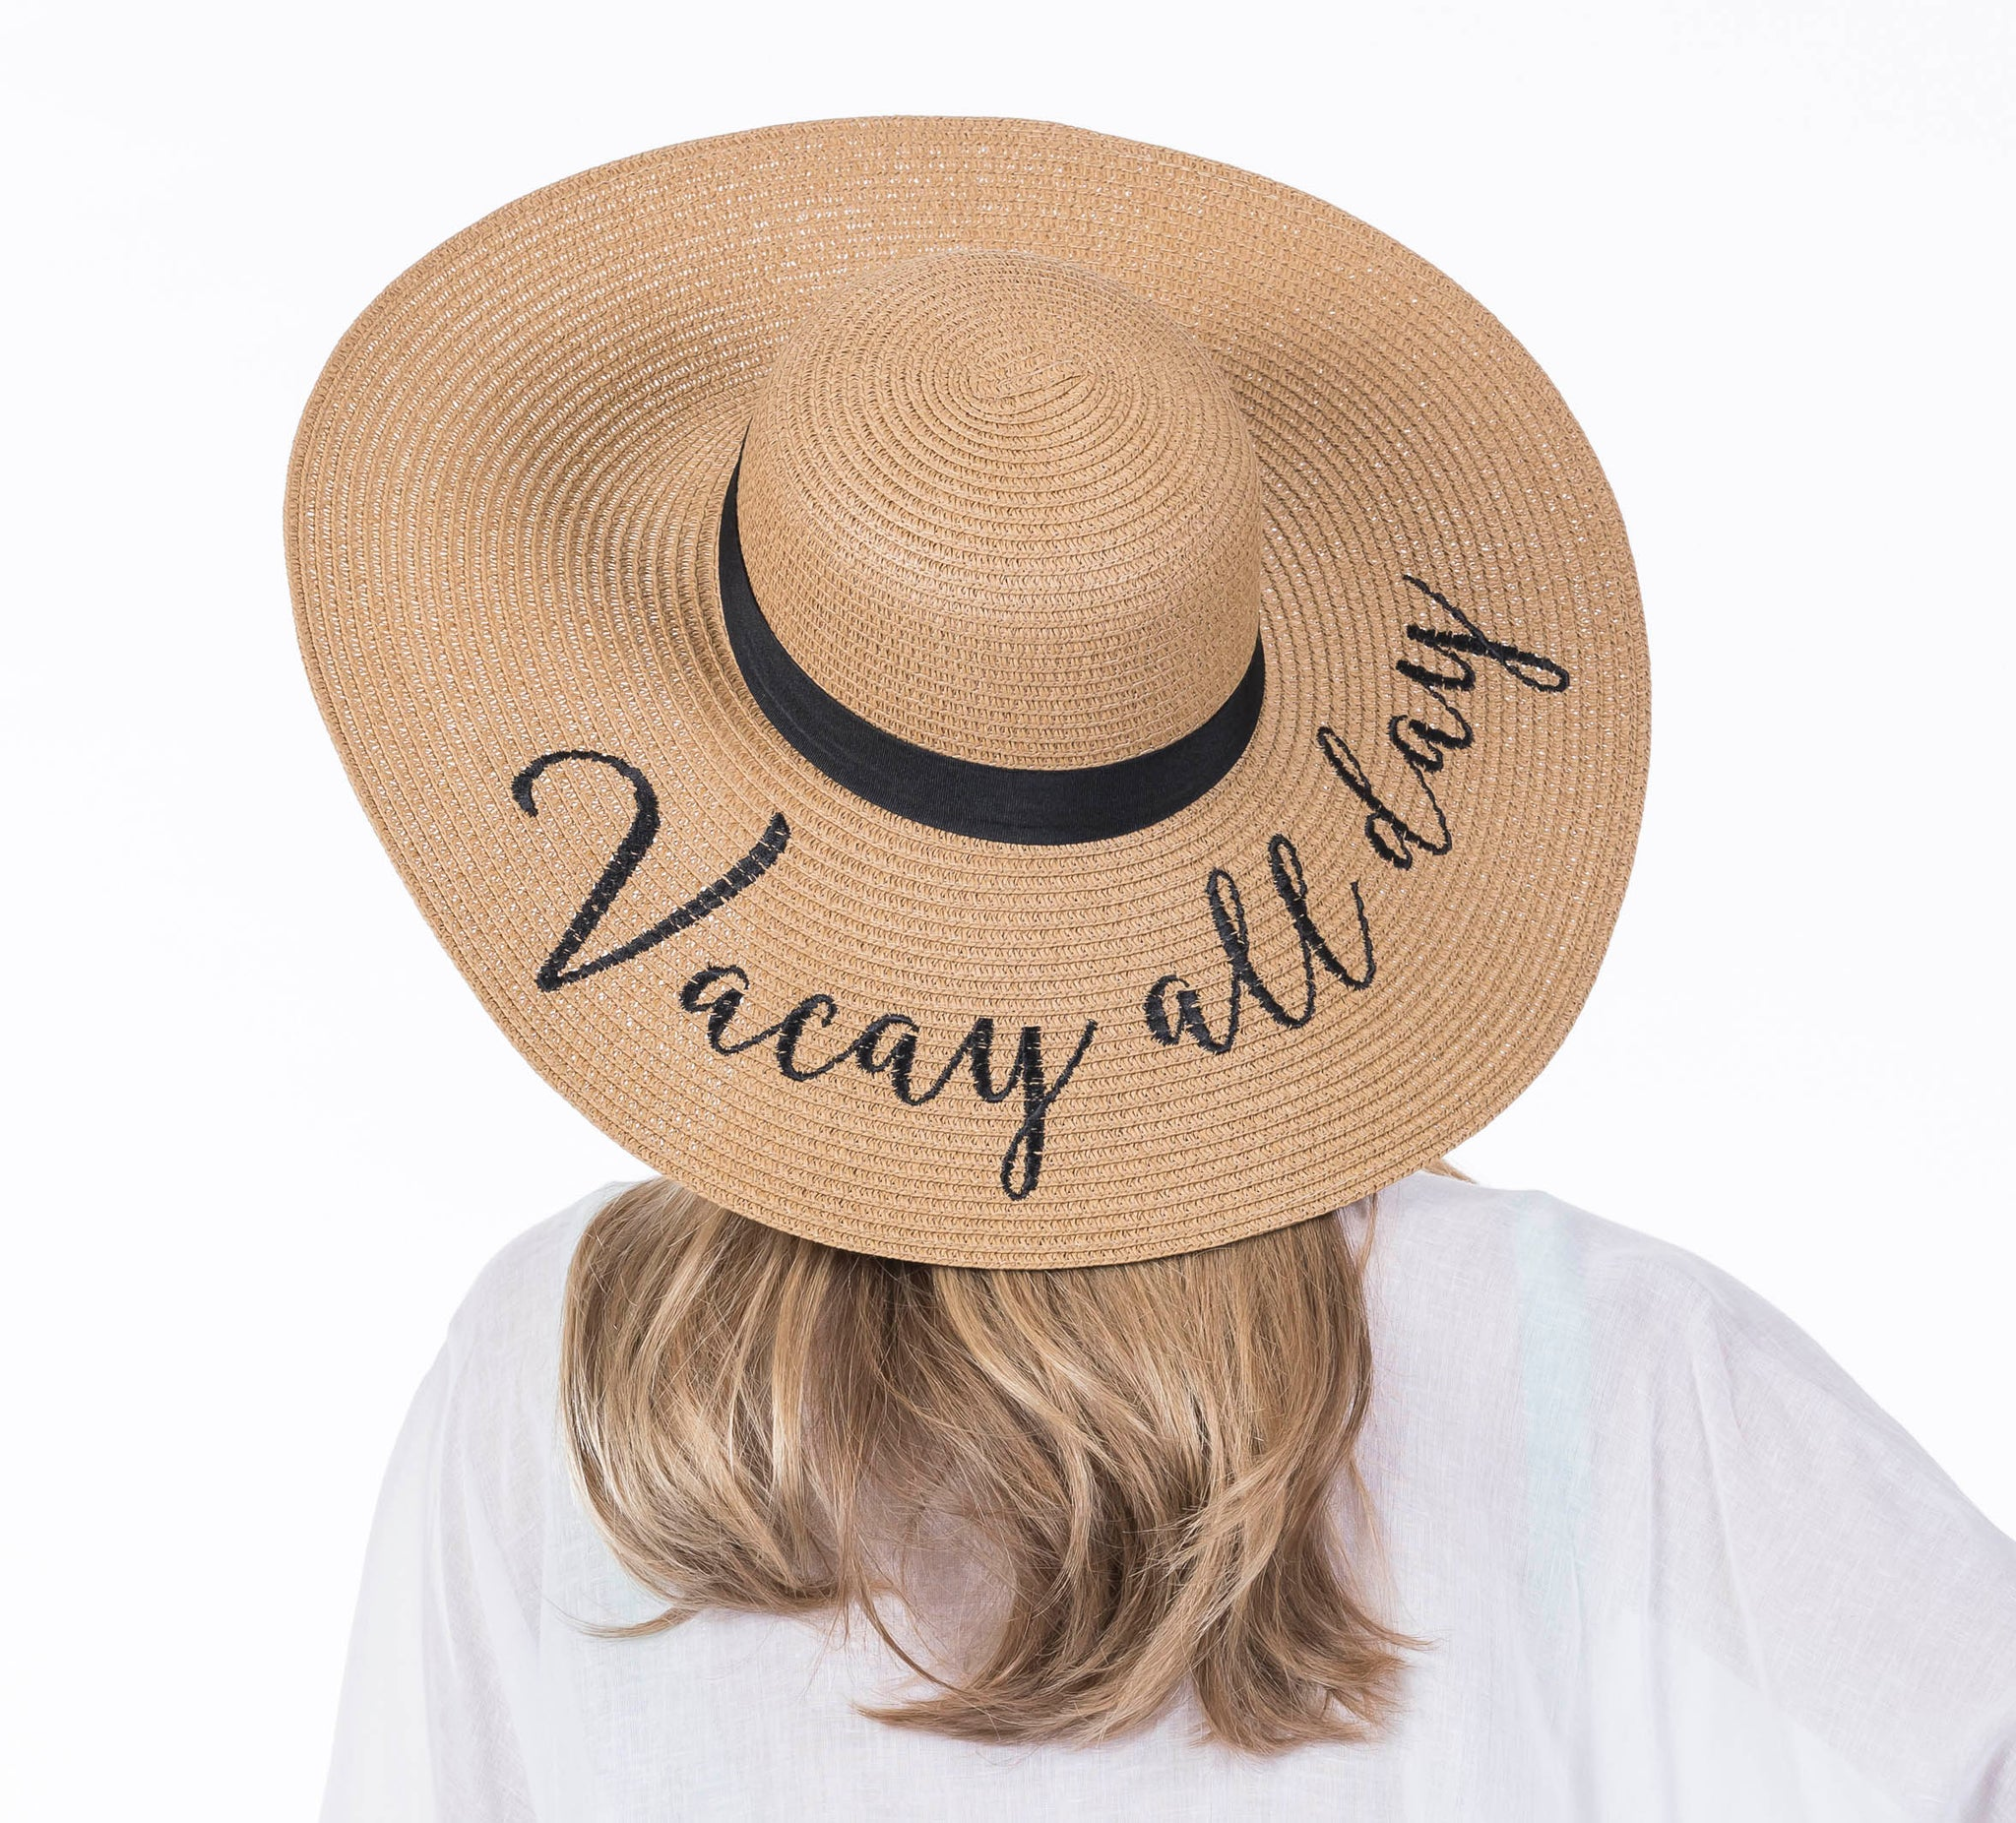 Vacay All Day Wholesale Sun Hats for Women